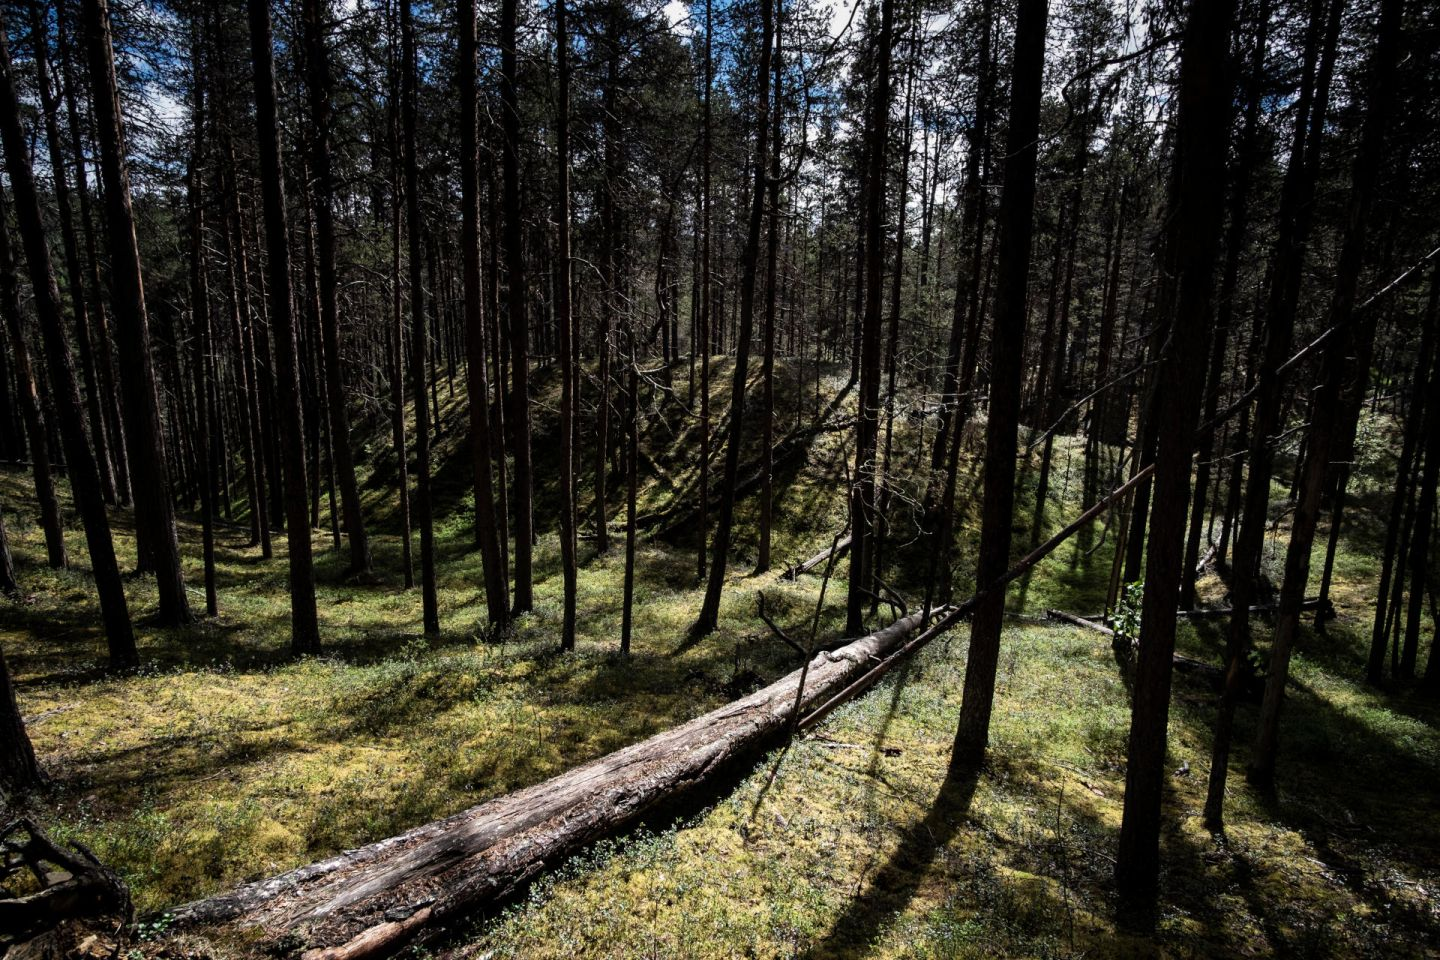 A forest view in Lapland, Europe's last wilderness